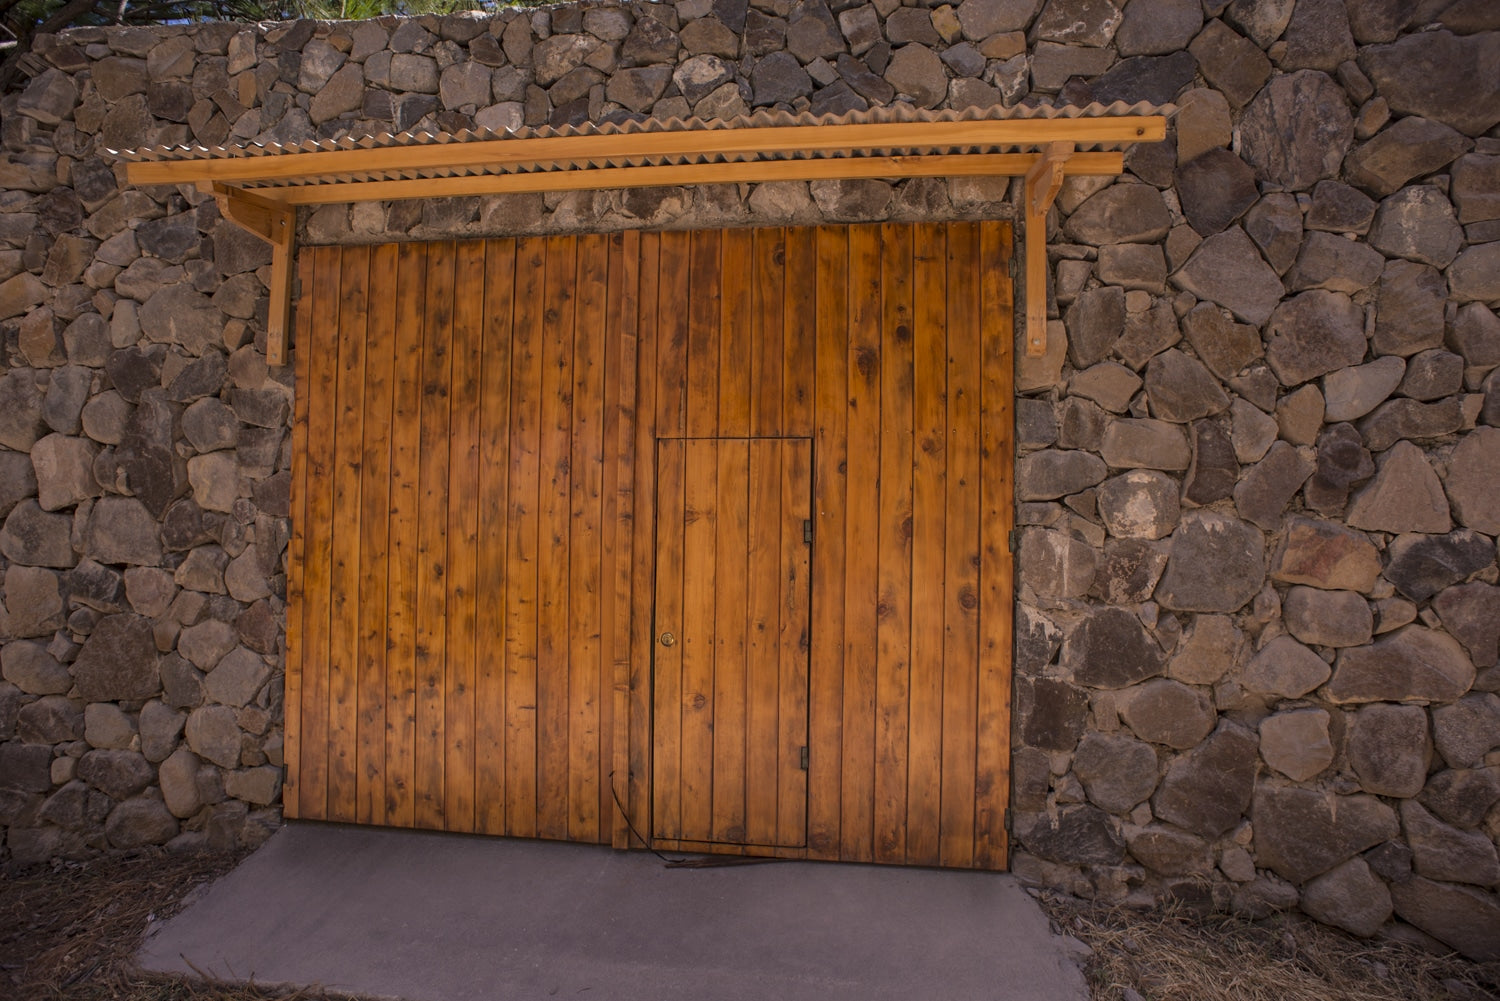 Wooden gate with stone wall